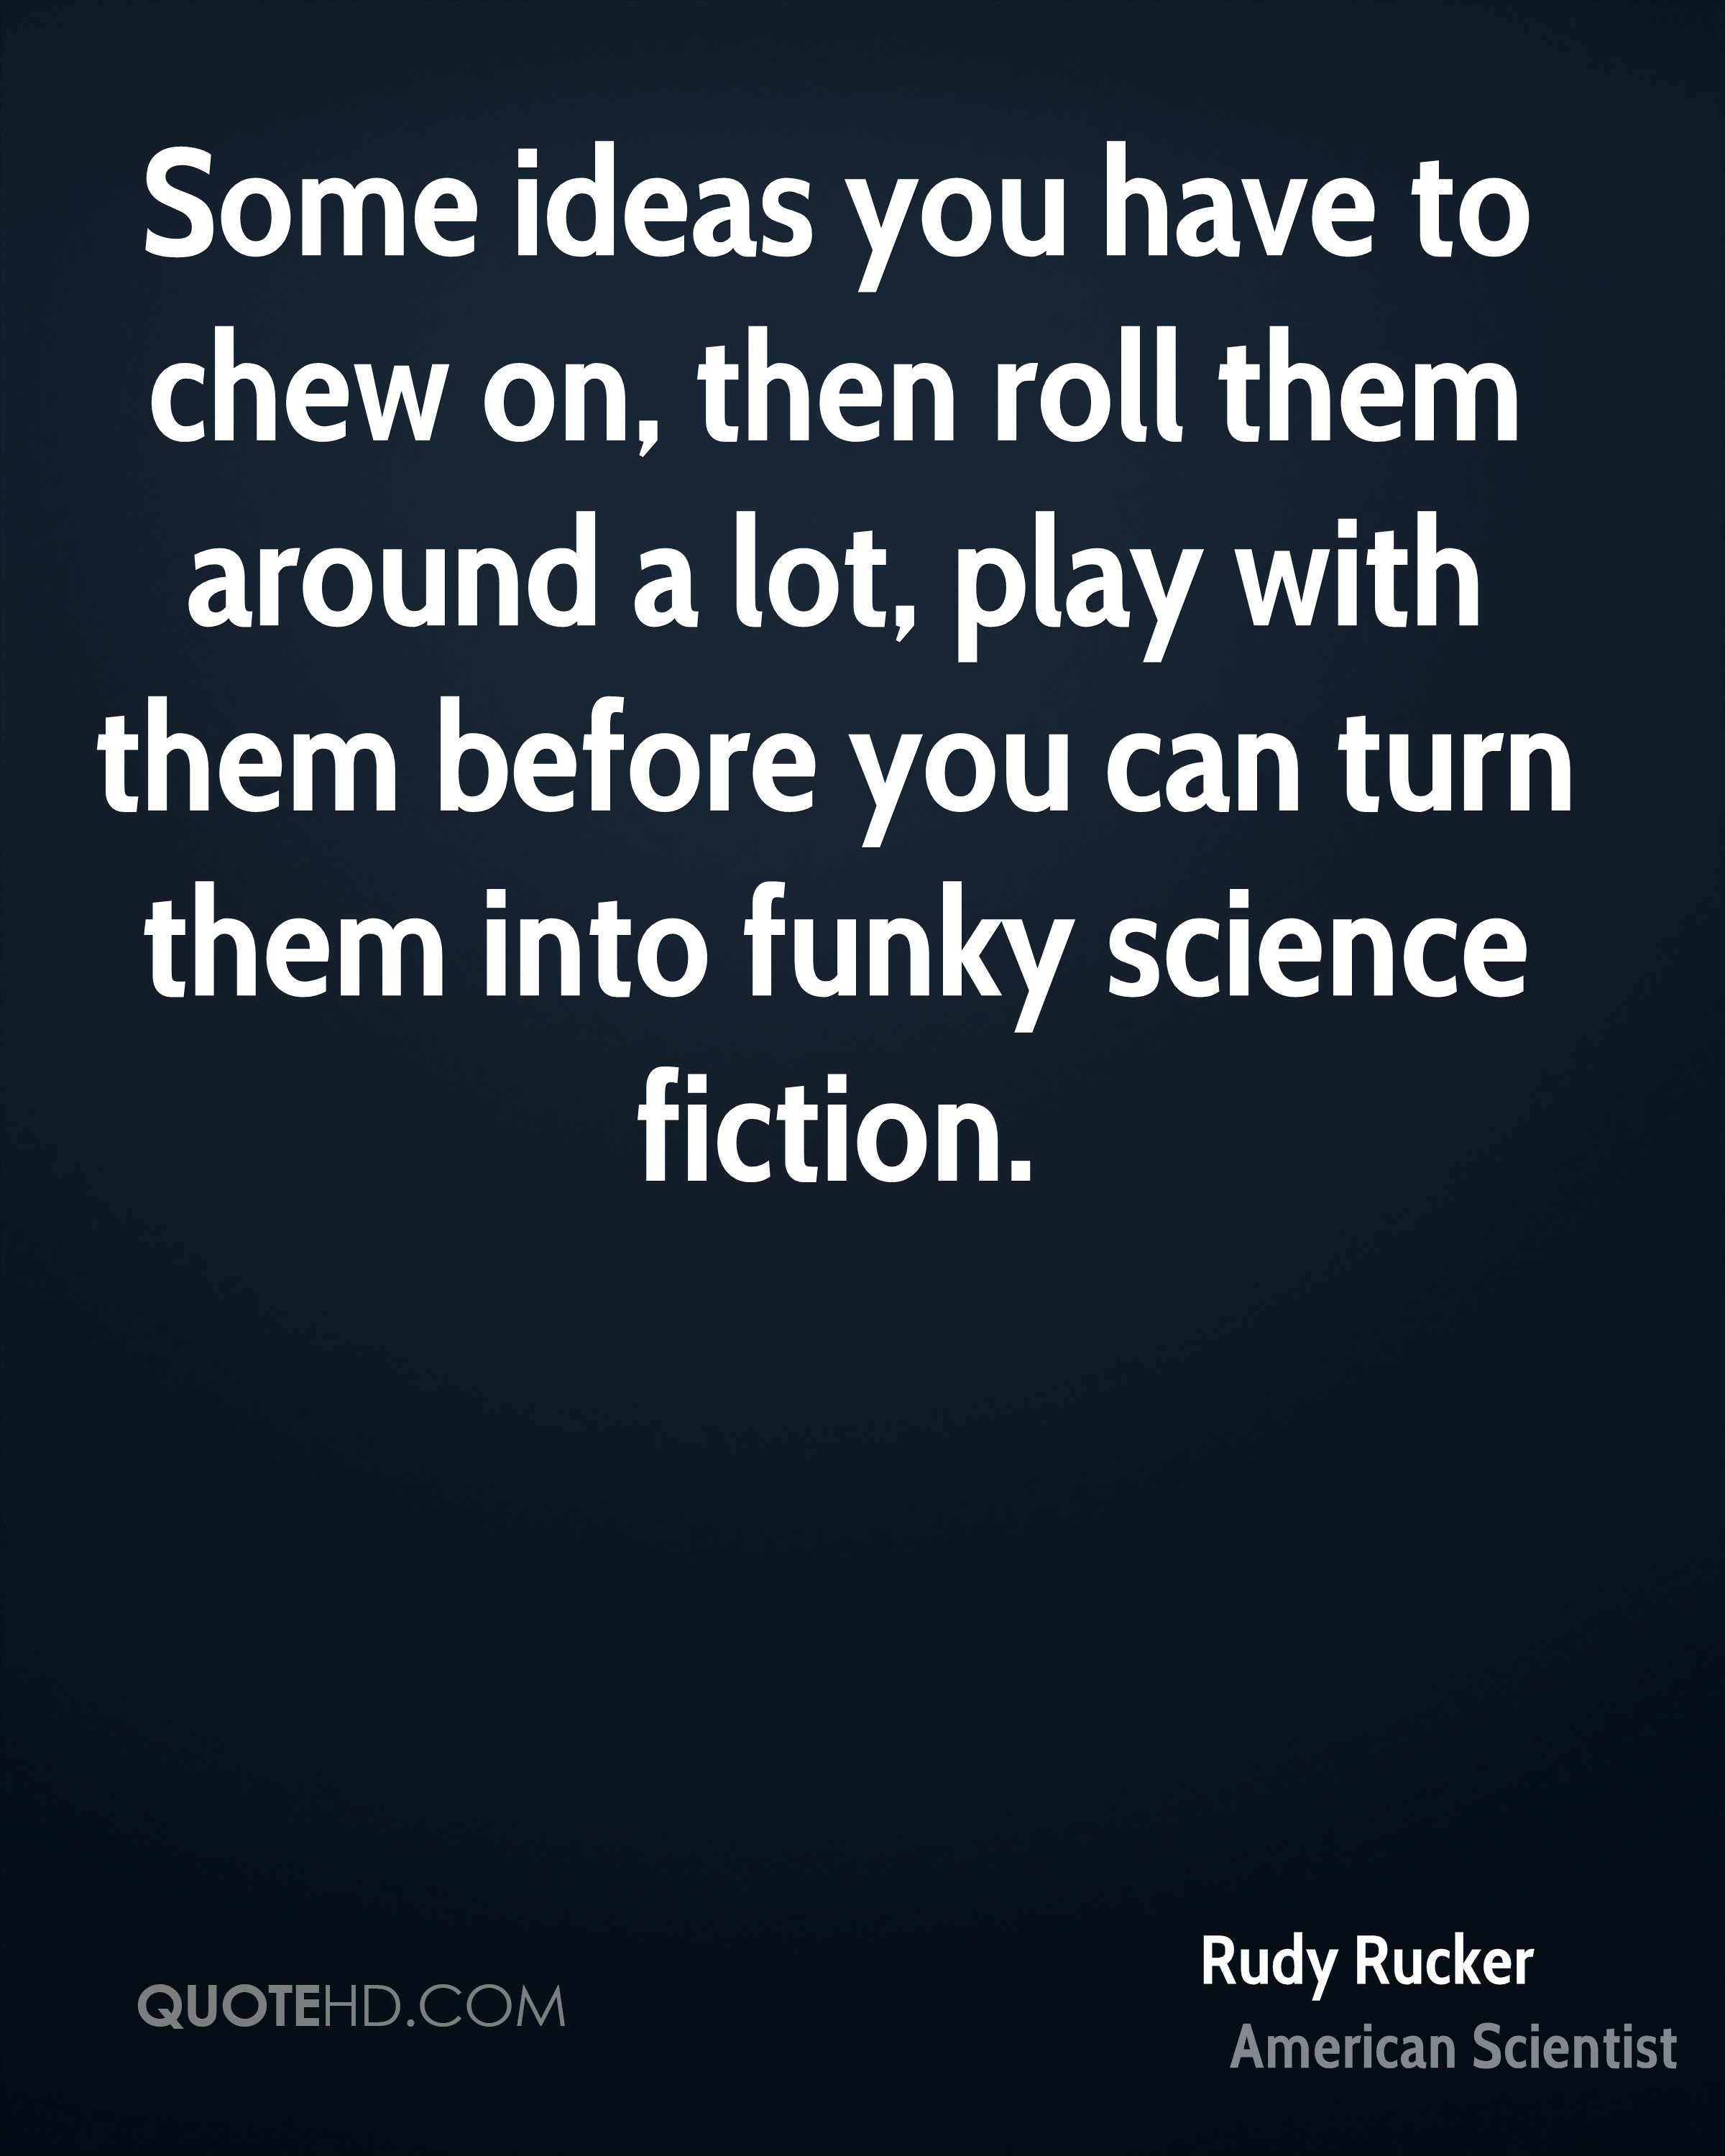 Some ideas you have to chew on, then roll them around a lot, play with them before you can turn them into funky science fiction.